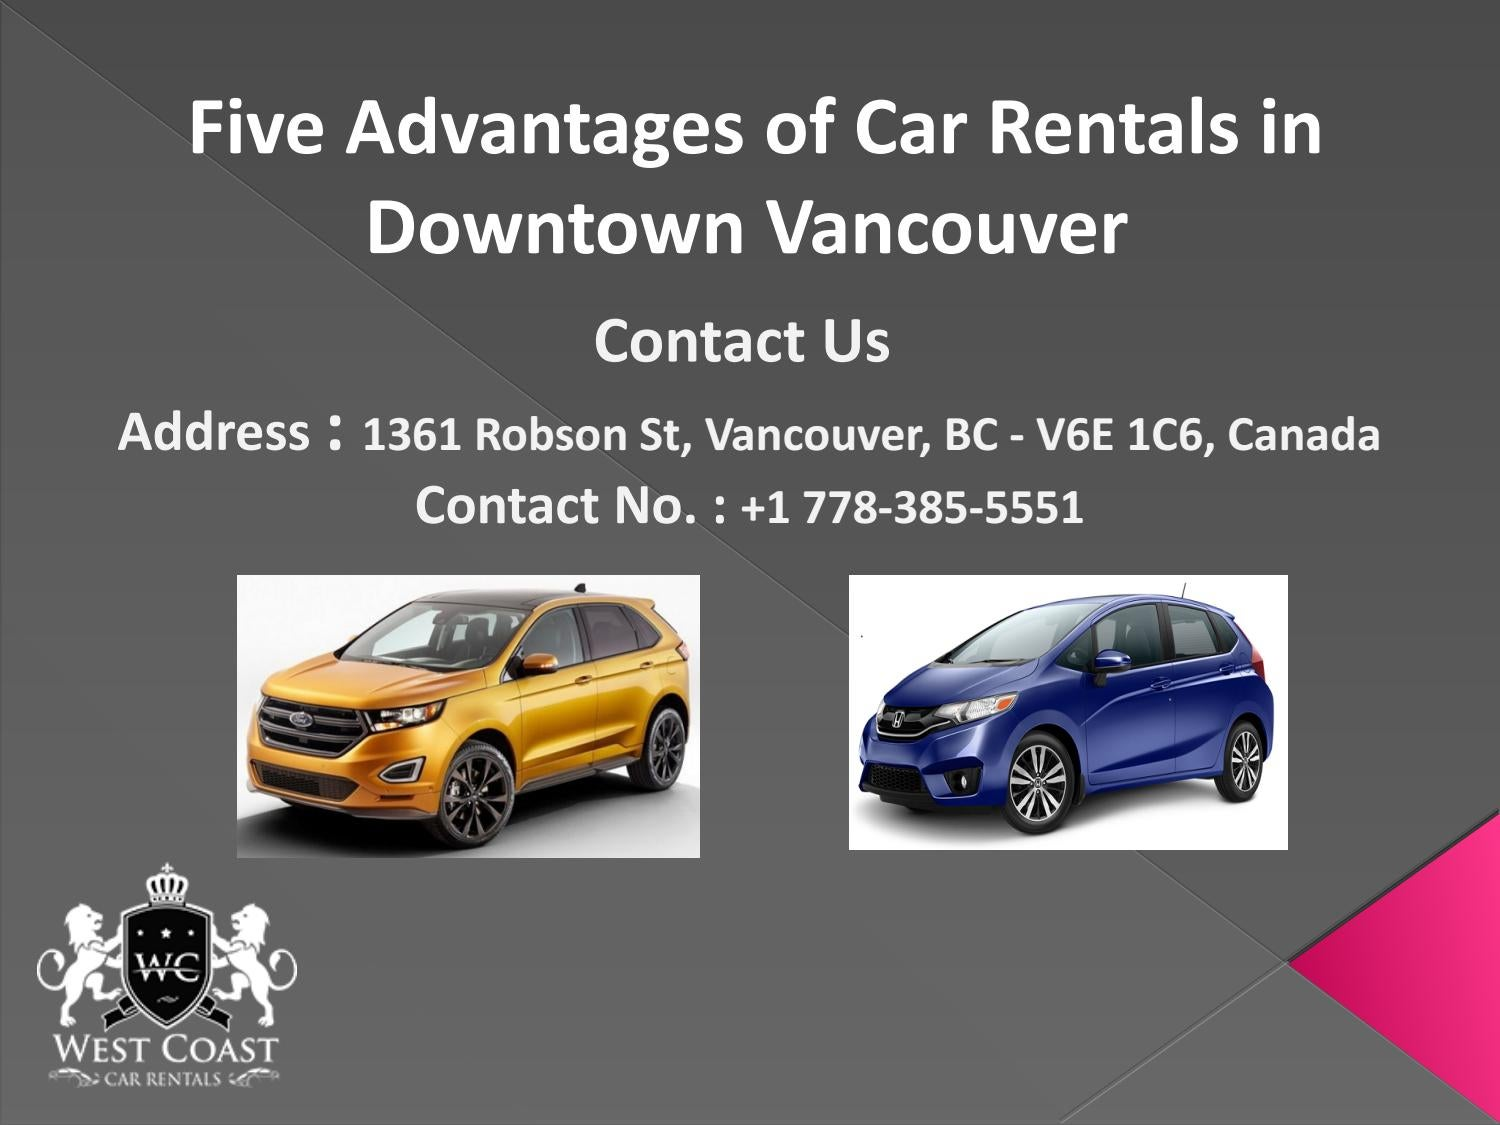 Five Advantages Of Car Rentals In Downtown Vancouver